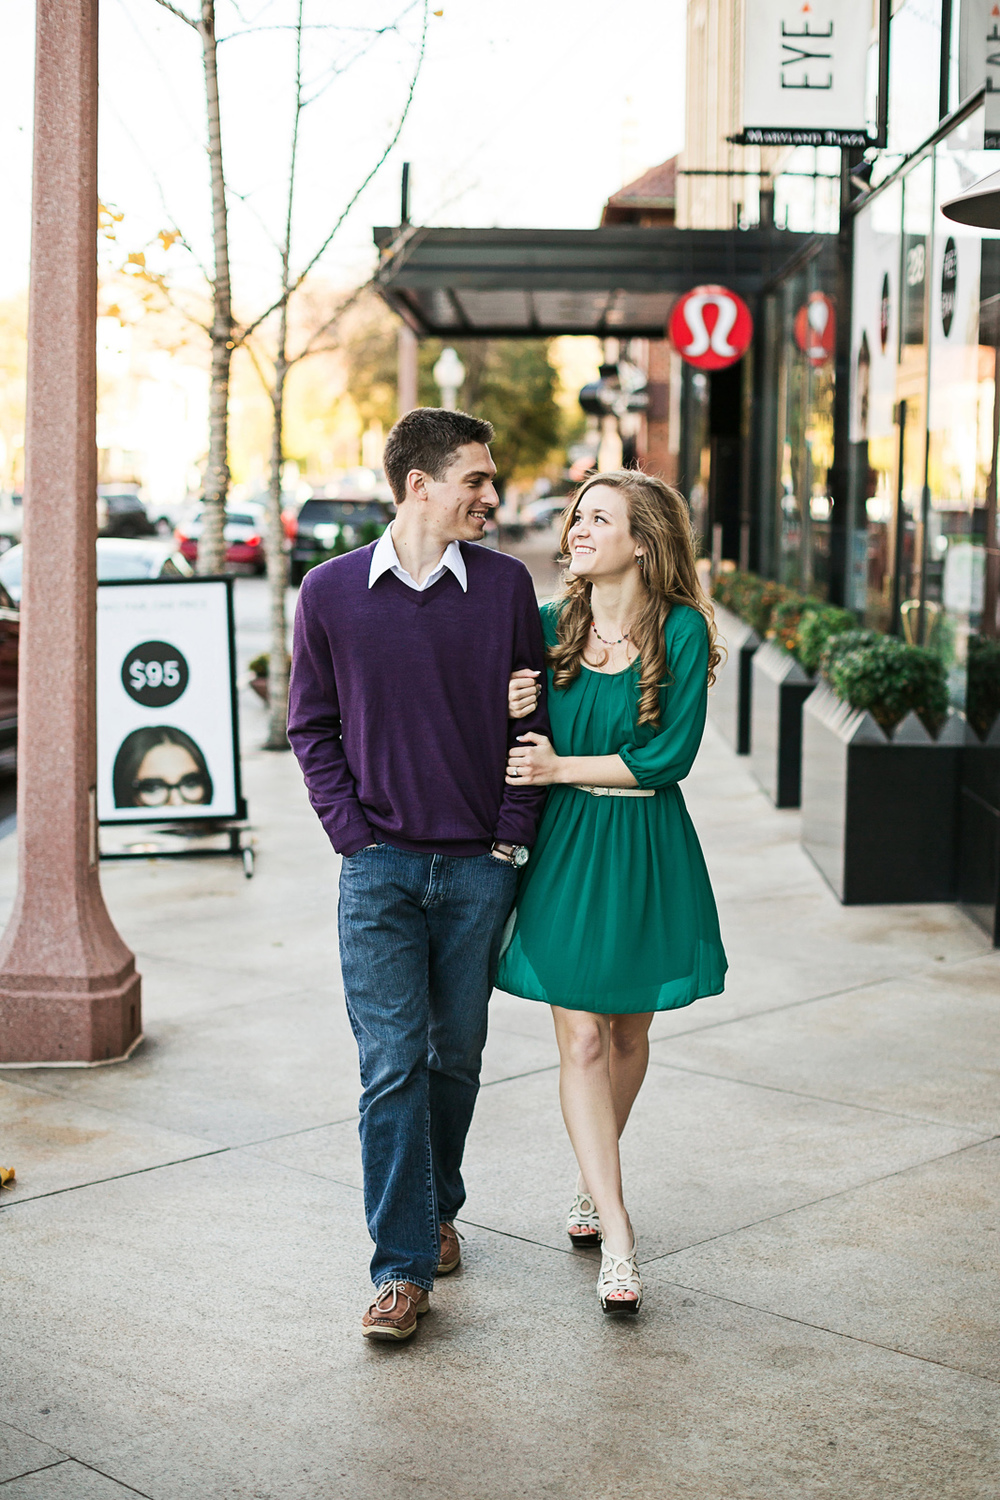 Oldani Photography-St Louis-CWE-Central West End-Engagement Session-engagement photos_20141108_161321.jpg